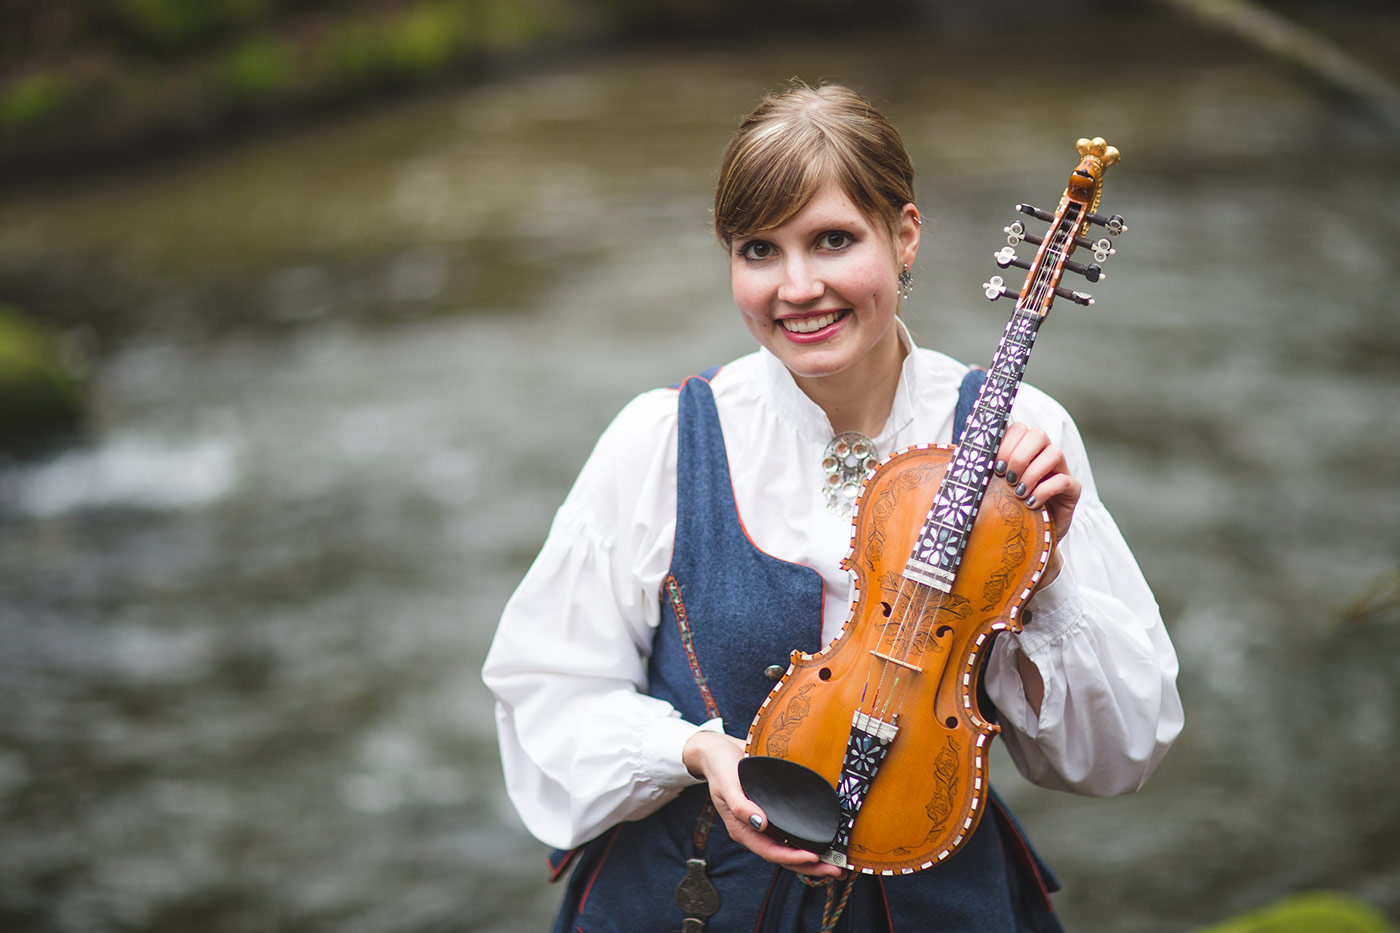 Rachel Nesvig in a traditional bunad holding her Hardanger fiddle